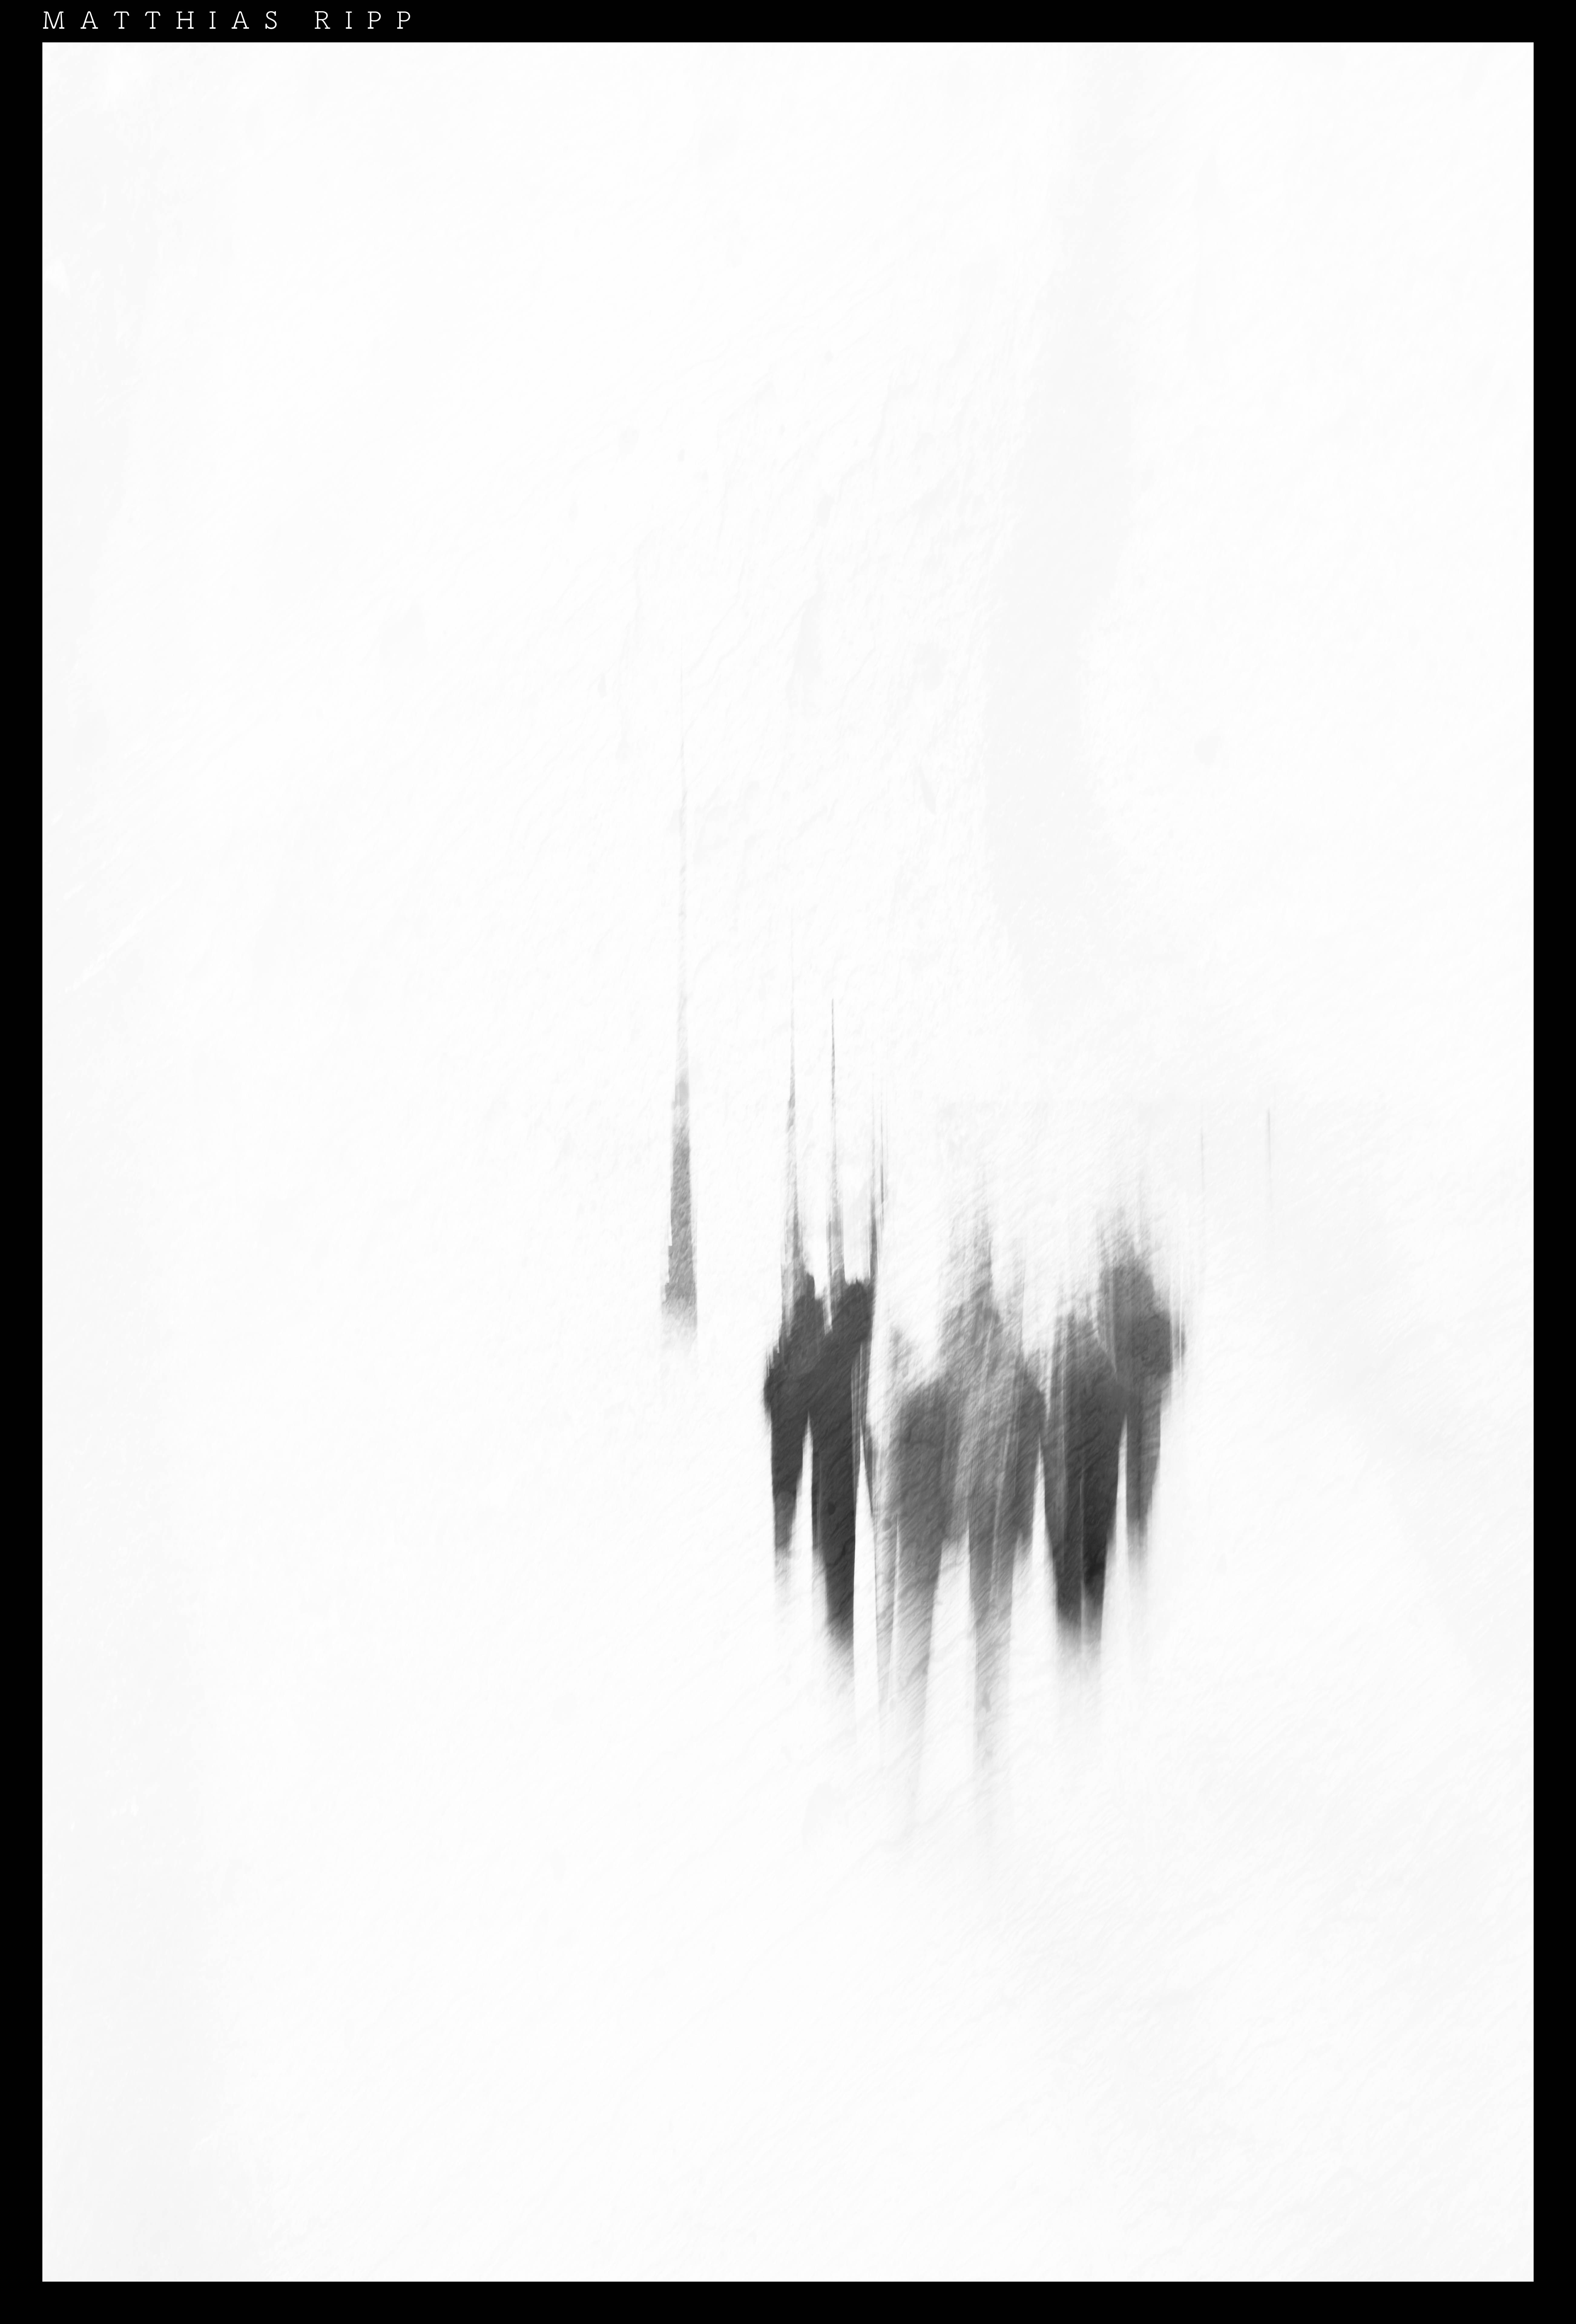 5207x7679 Free Images Silhouette, Black And White, Street, Paris, Urban